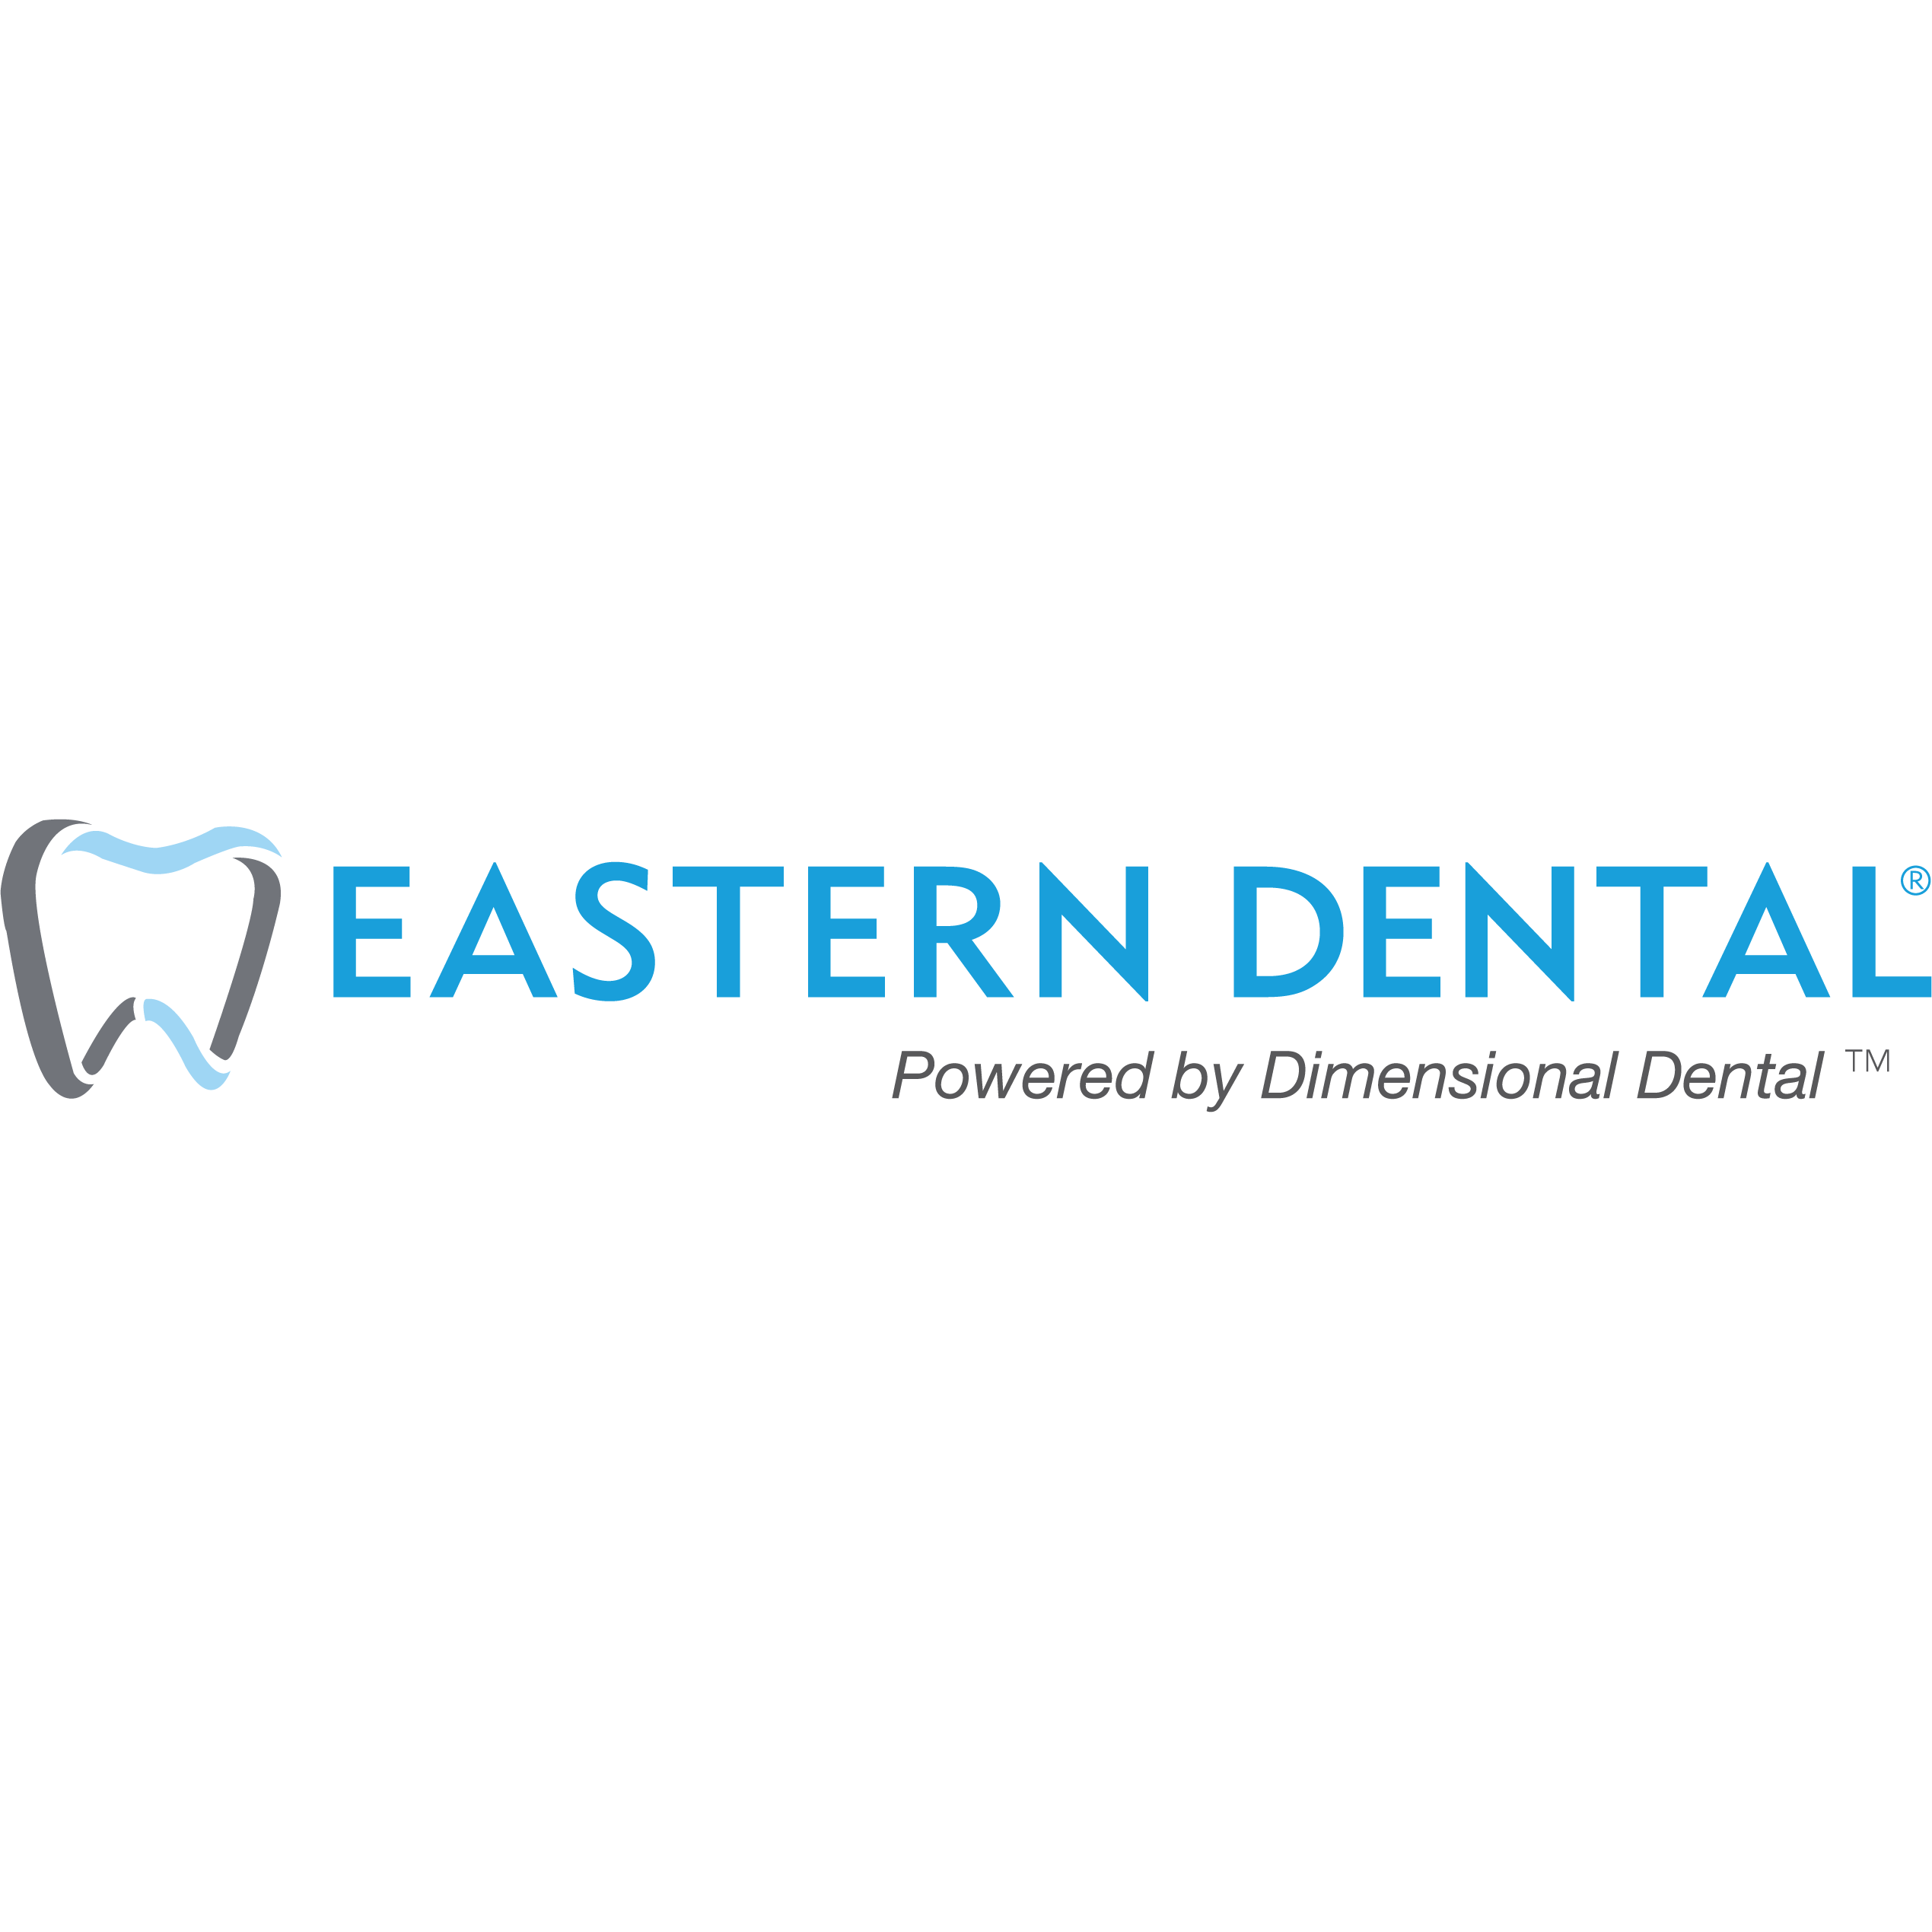 Eastern Dental - Howell, NJ 07731 - (732)702-0437 | ShowMeLocal.com